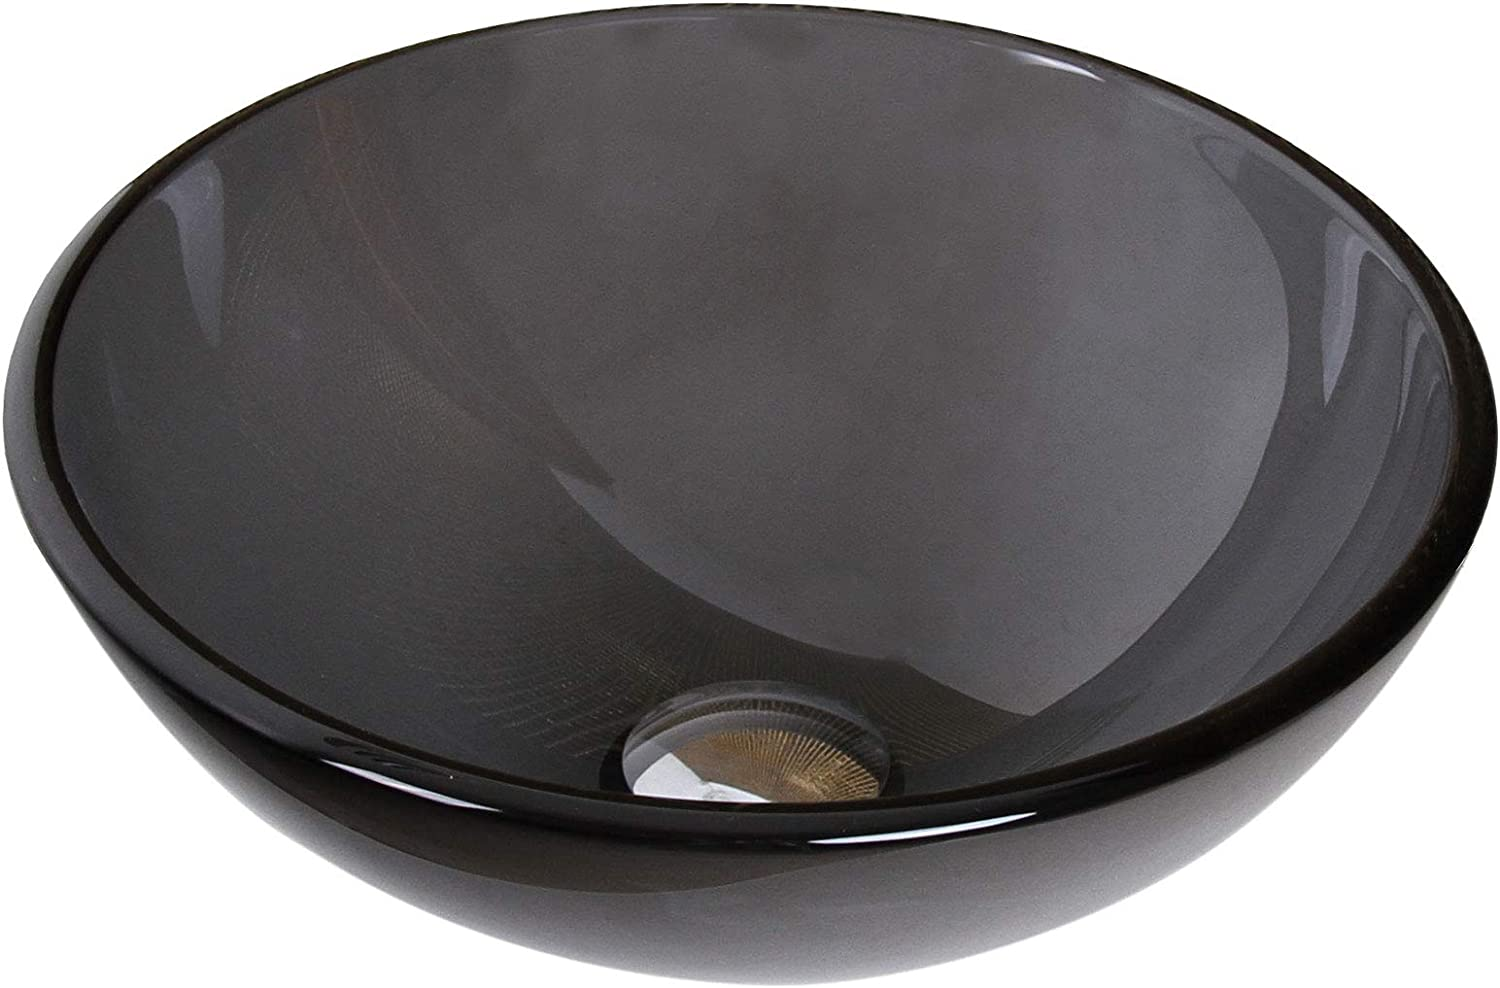 ELITE Bathroom Small 14 Clear Black Glass Vessel Sink Chrome Pop up drain Mounting ring